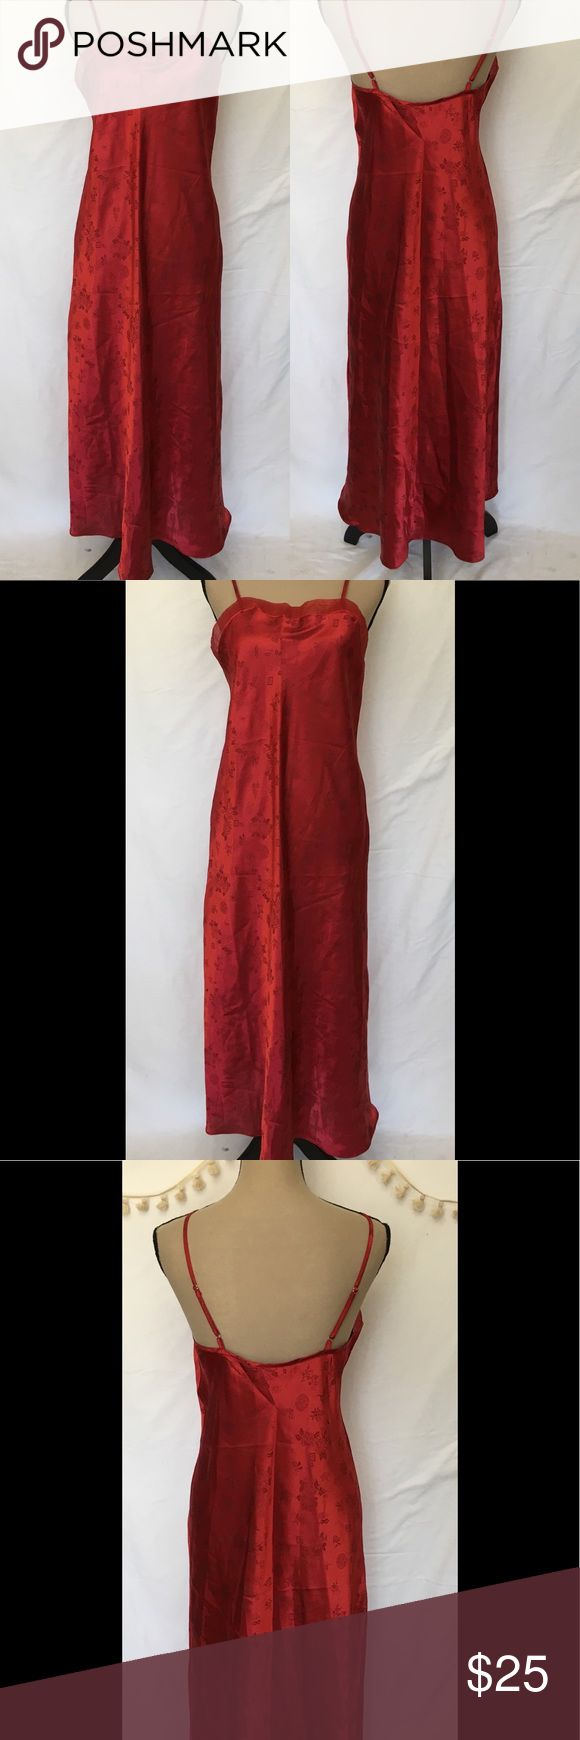 "Red Satin Chiffon Asian Patterned Gown Lingerie Red Satin Chiffon Asian Patterned Gown Lingerie Nightgown Womens Medium  Jaclyn Smith Intimates- New with tags  100% Polyester  Adjustable straps  Asian theme imprinted fabric  MEASUREMENTS — LENGTH 49"" UNDERARM TO UNDERARM 18"" HIPS 46"" all around Intimates & Sleepwear Pajamas"